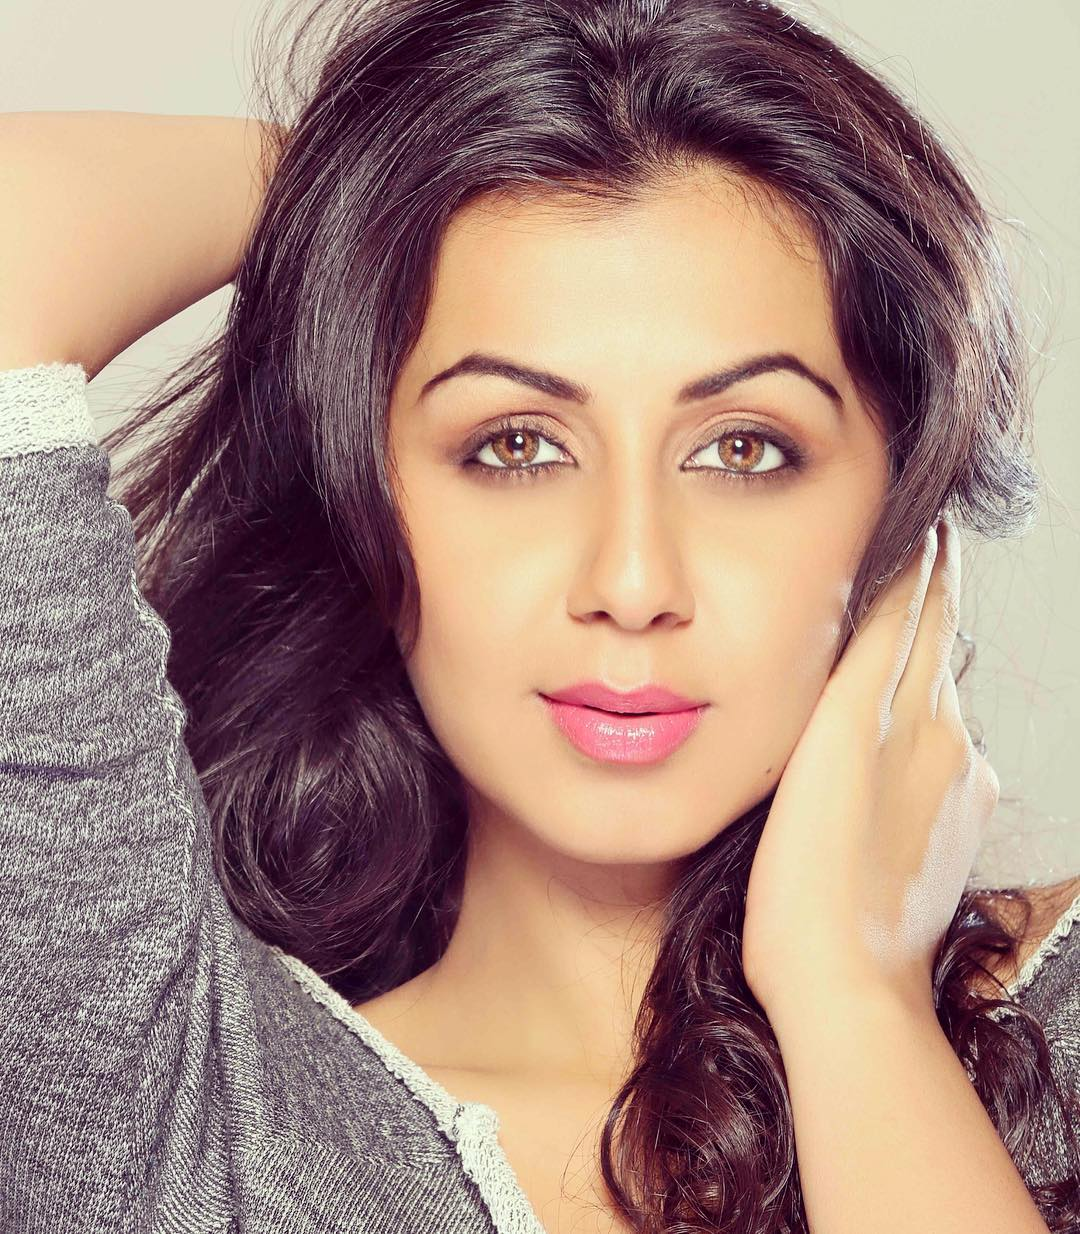 Nikki Galrani Images, Nikki Galrani Beautiful Pics, Nikki Galrani, Nikki, Galrani, Nikki Galrani Photos, south indian actress photo, hot image, hot photo, hot actress, indian hot images, hot images of actress, actress hot photos, indian actress pics, actress images, indian hot photos, indian actress photos, heroine photos, hot indian actress, indian actress images, hindi actress photos, actress gallery, hindi actress hot photos, telugu heroine hot photos, telugu heroine photos, tamil hot photos, south heroine, indian actress hot images, indian actress hot picture, south indian photo, south indian actress name list with photo, indian actress hot pics, south ki picture, indian heroine photo, south indian hd photo, telugu actress photos, actress pics, south indian heroine, telugu actress images, south indian picture, hot bollywood actress, hot wallpaper, tamil actress photos, hot actress wallpaper, hot pics, hot pic, hot photos, indian girl, actress photo gallery, Malyalam Actress Photo  Nikki Galrani HD, Gorgeous, High Quality, Sexy, Hot, Lovely, Cute, Sweet, Awesome, unseen, Viral, Oops,  Smart, Beautiful Pics